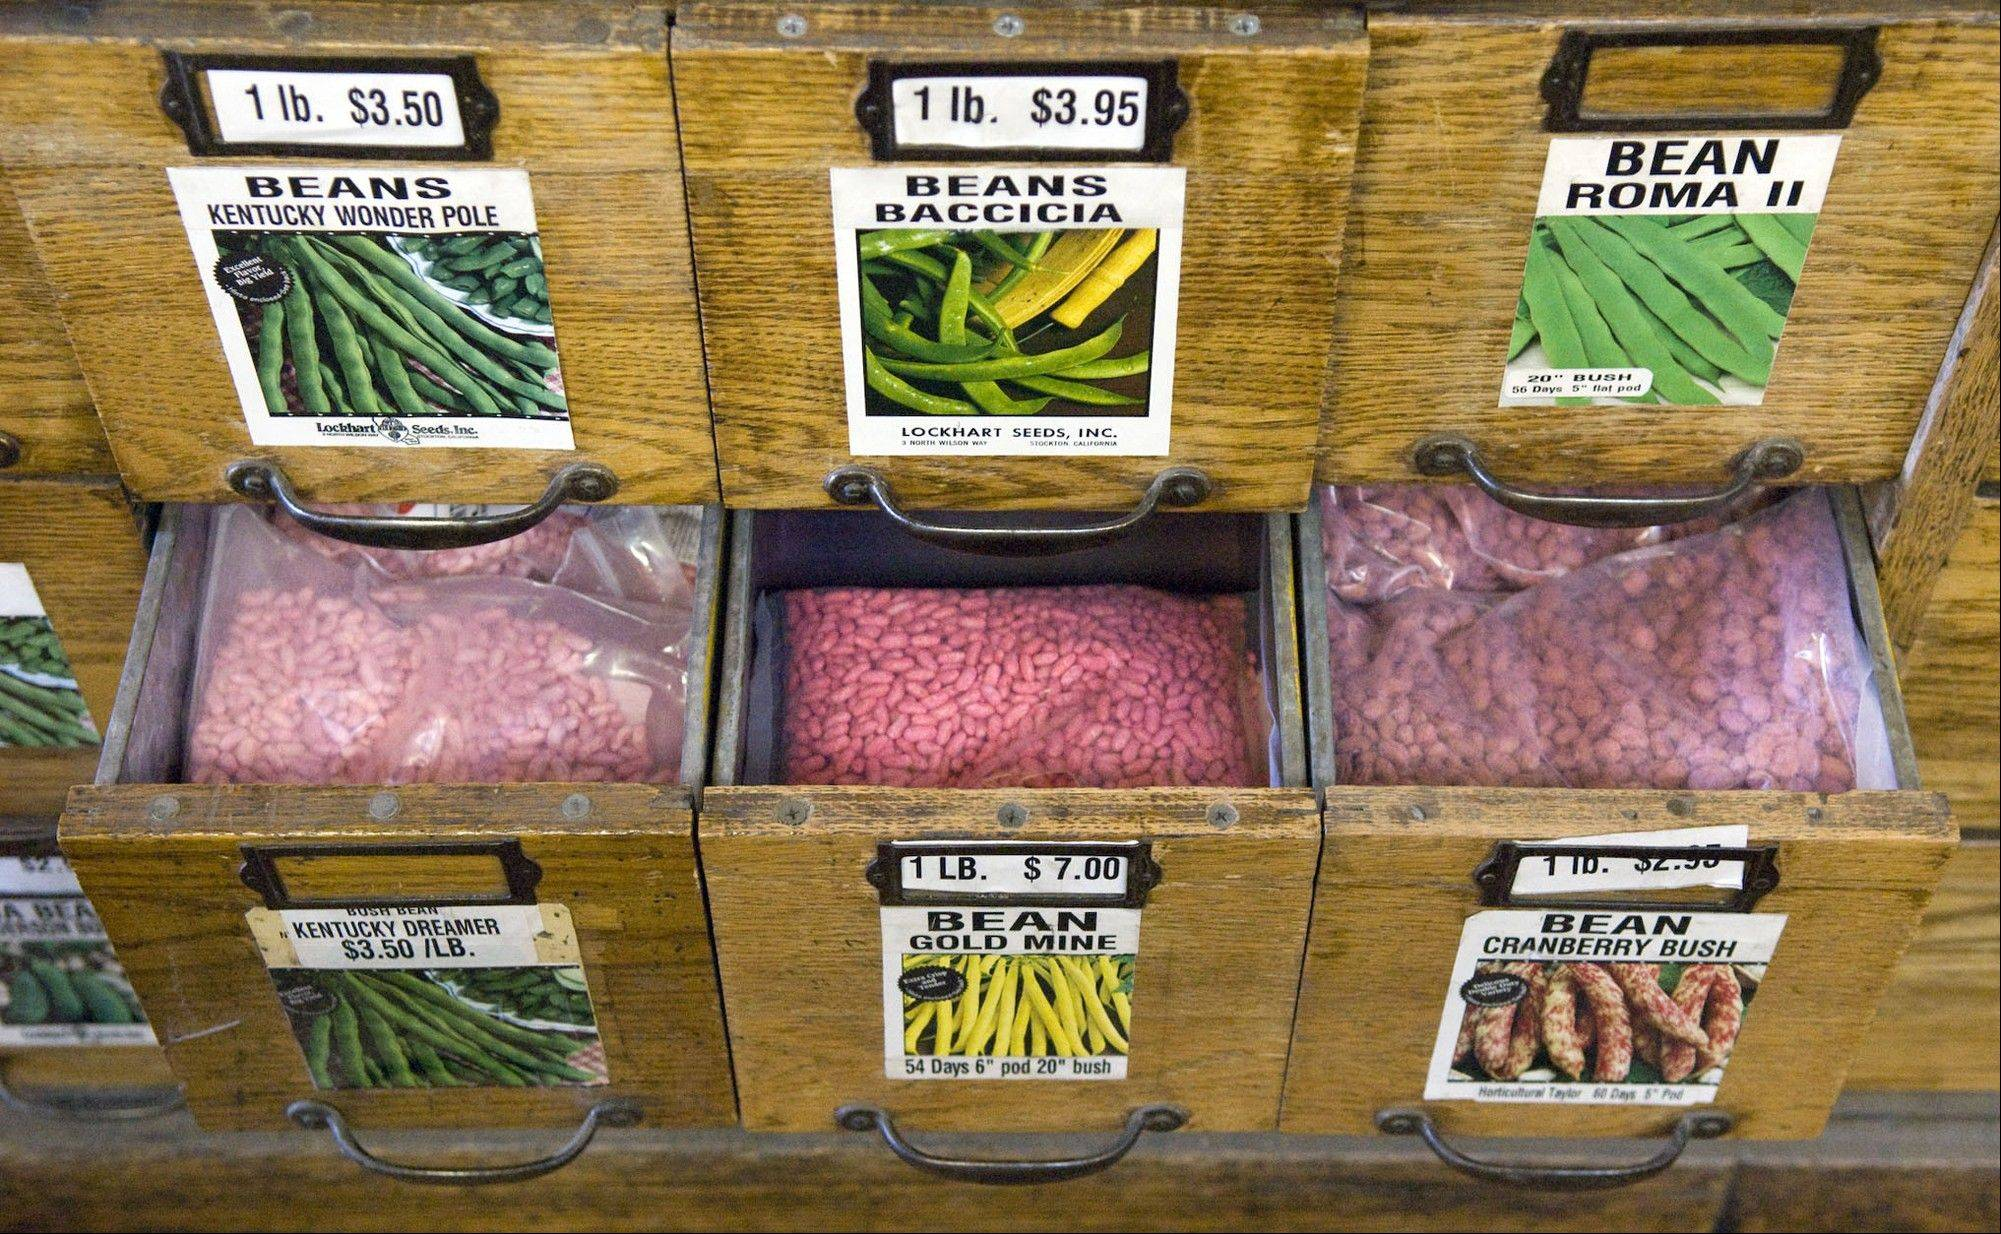 Numerous varieties of prepackaged seeds can be purchased at Lockhart Seeds. The week after Christmas, your mailbox will start filling up with the latest seed catalogs.